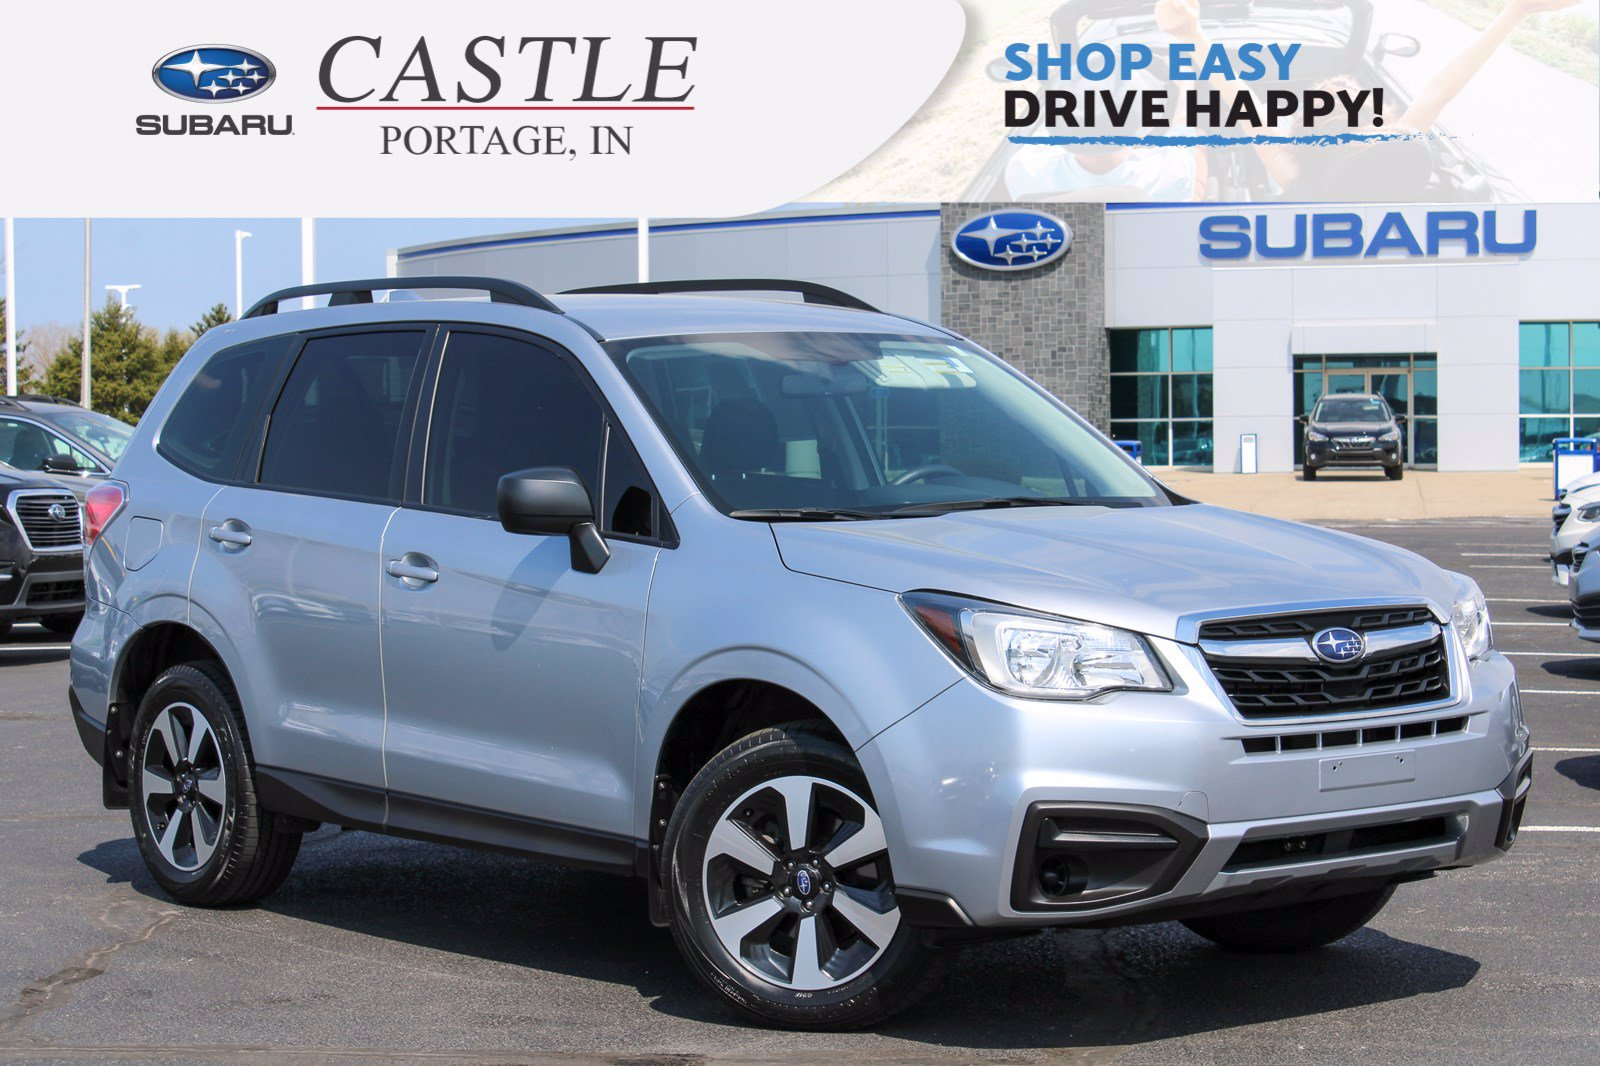 Used Subaru Forester Portage In